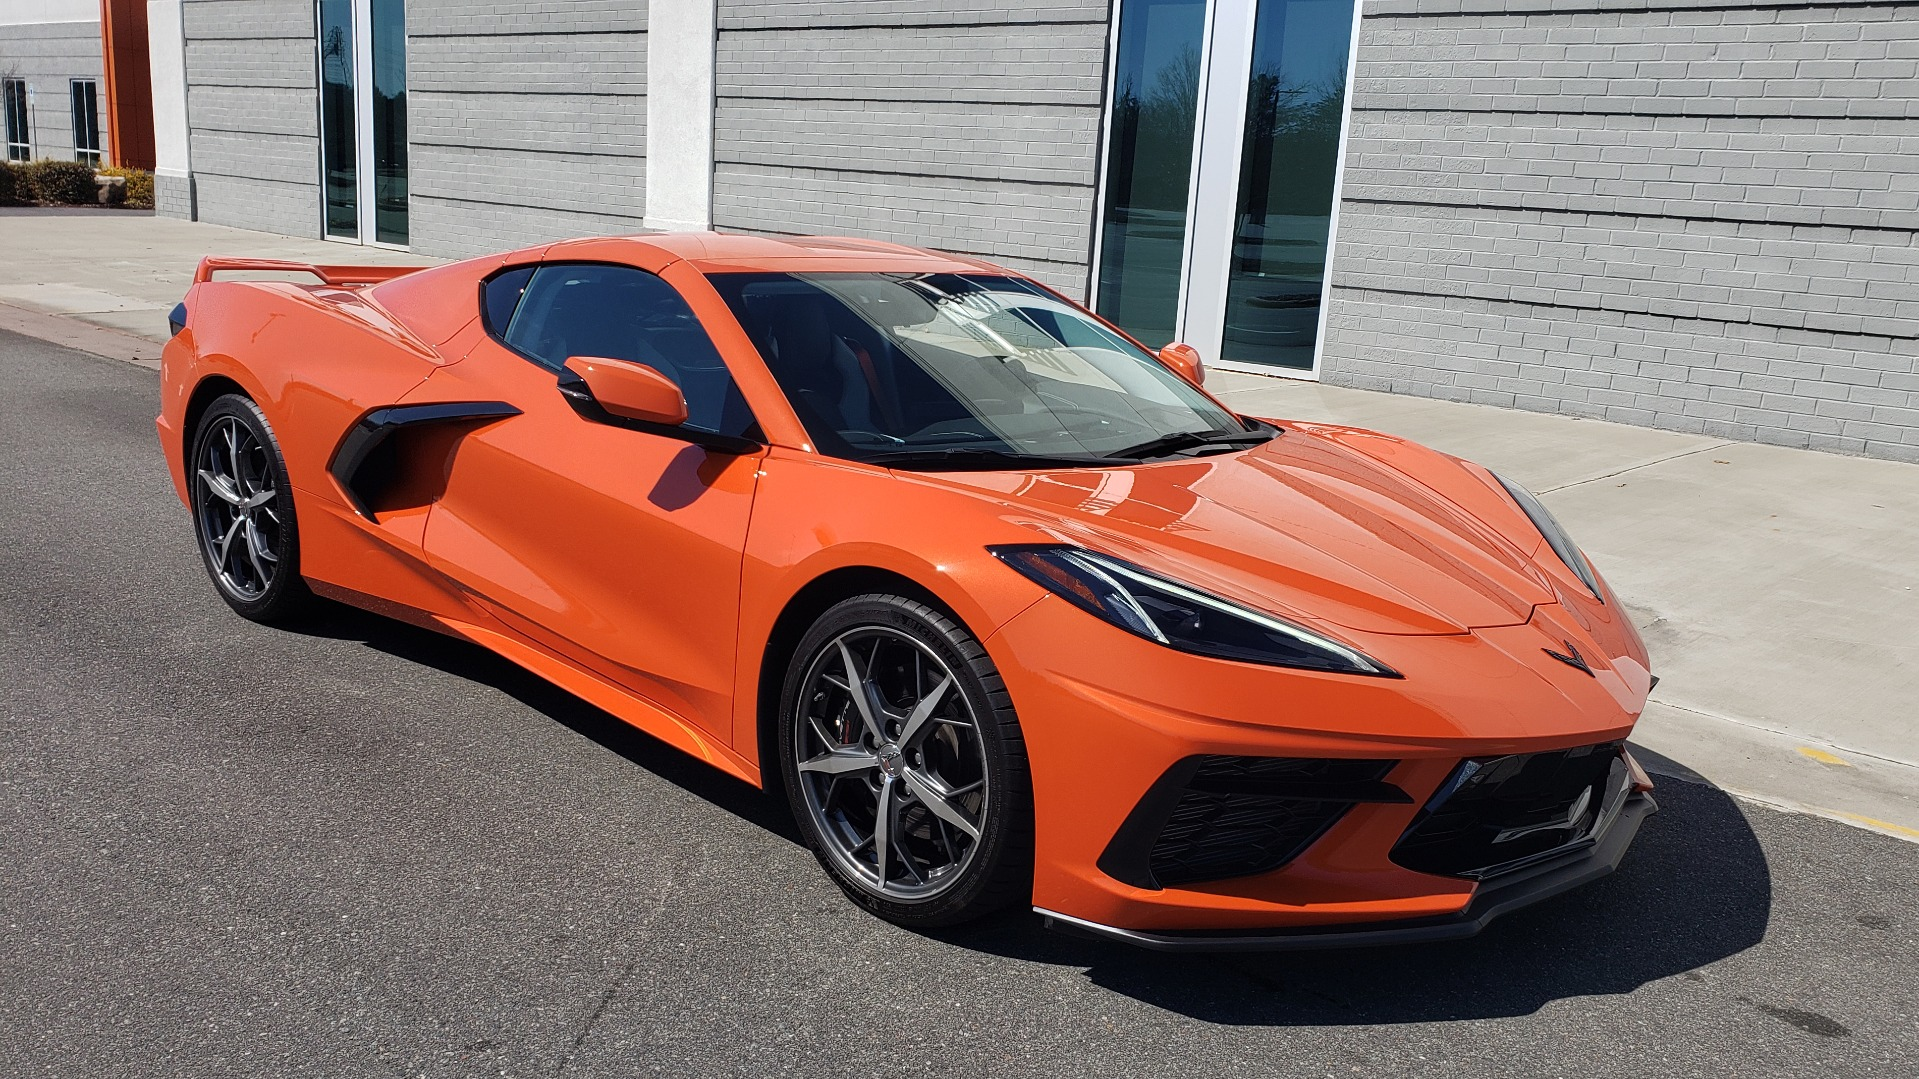 Used 2020 Chevrolet CORVETTE C8 STINGRAY 3LT COUPE / NAV / BOSE / CAMERA / LIKE NEW for sale Sold at Formula Imports in Charlotte NC 28227 2